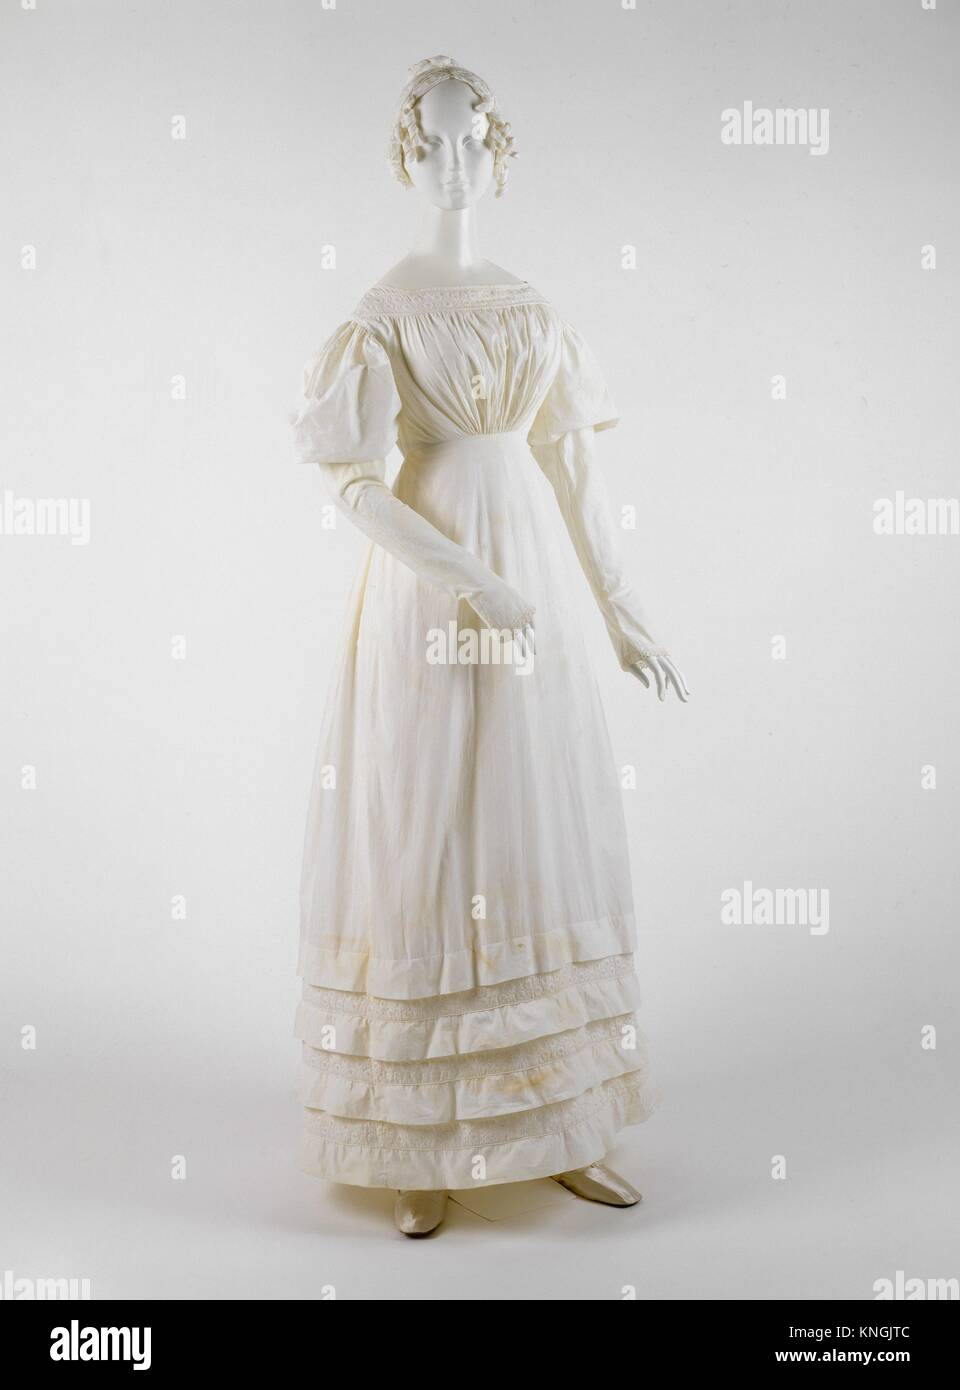 Dress. Date: 1830s; Culture: American or European; Medium: cotton; Credit Line: Gift of James R. Creel IV and Mr. - Stock Image